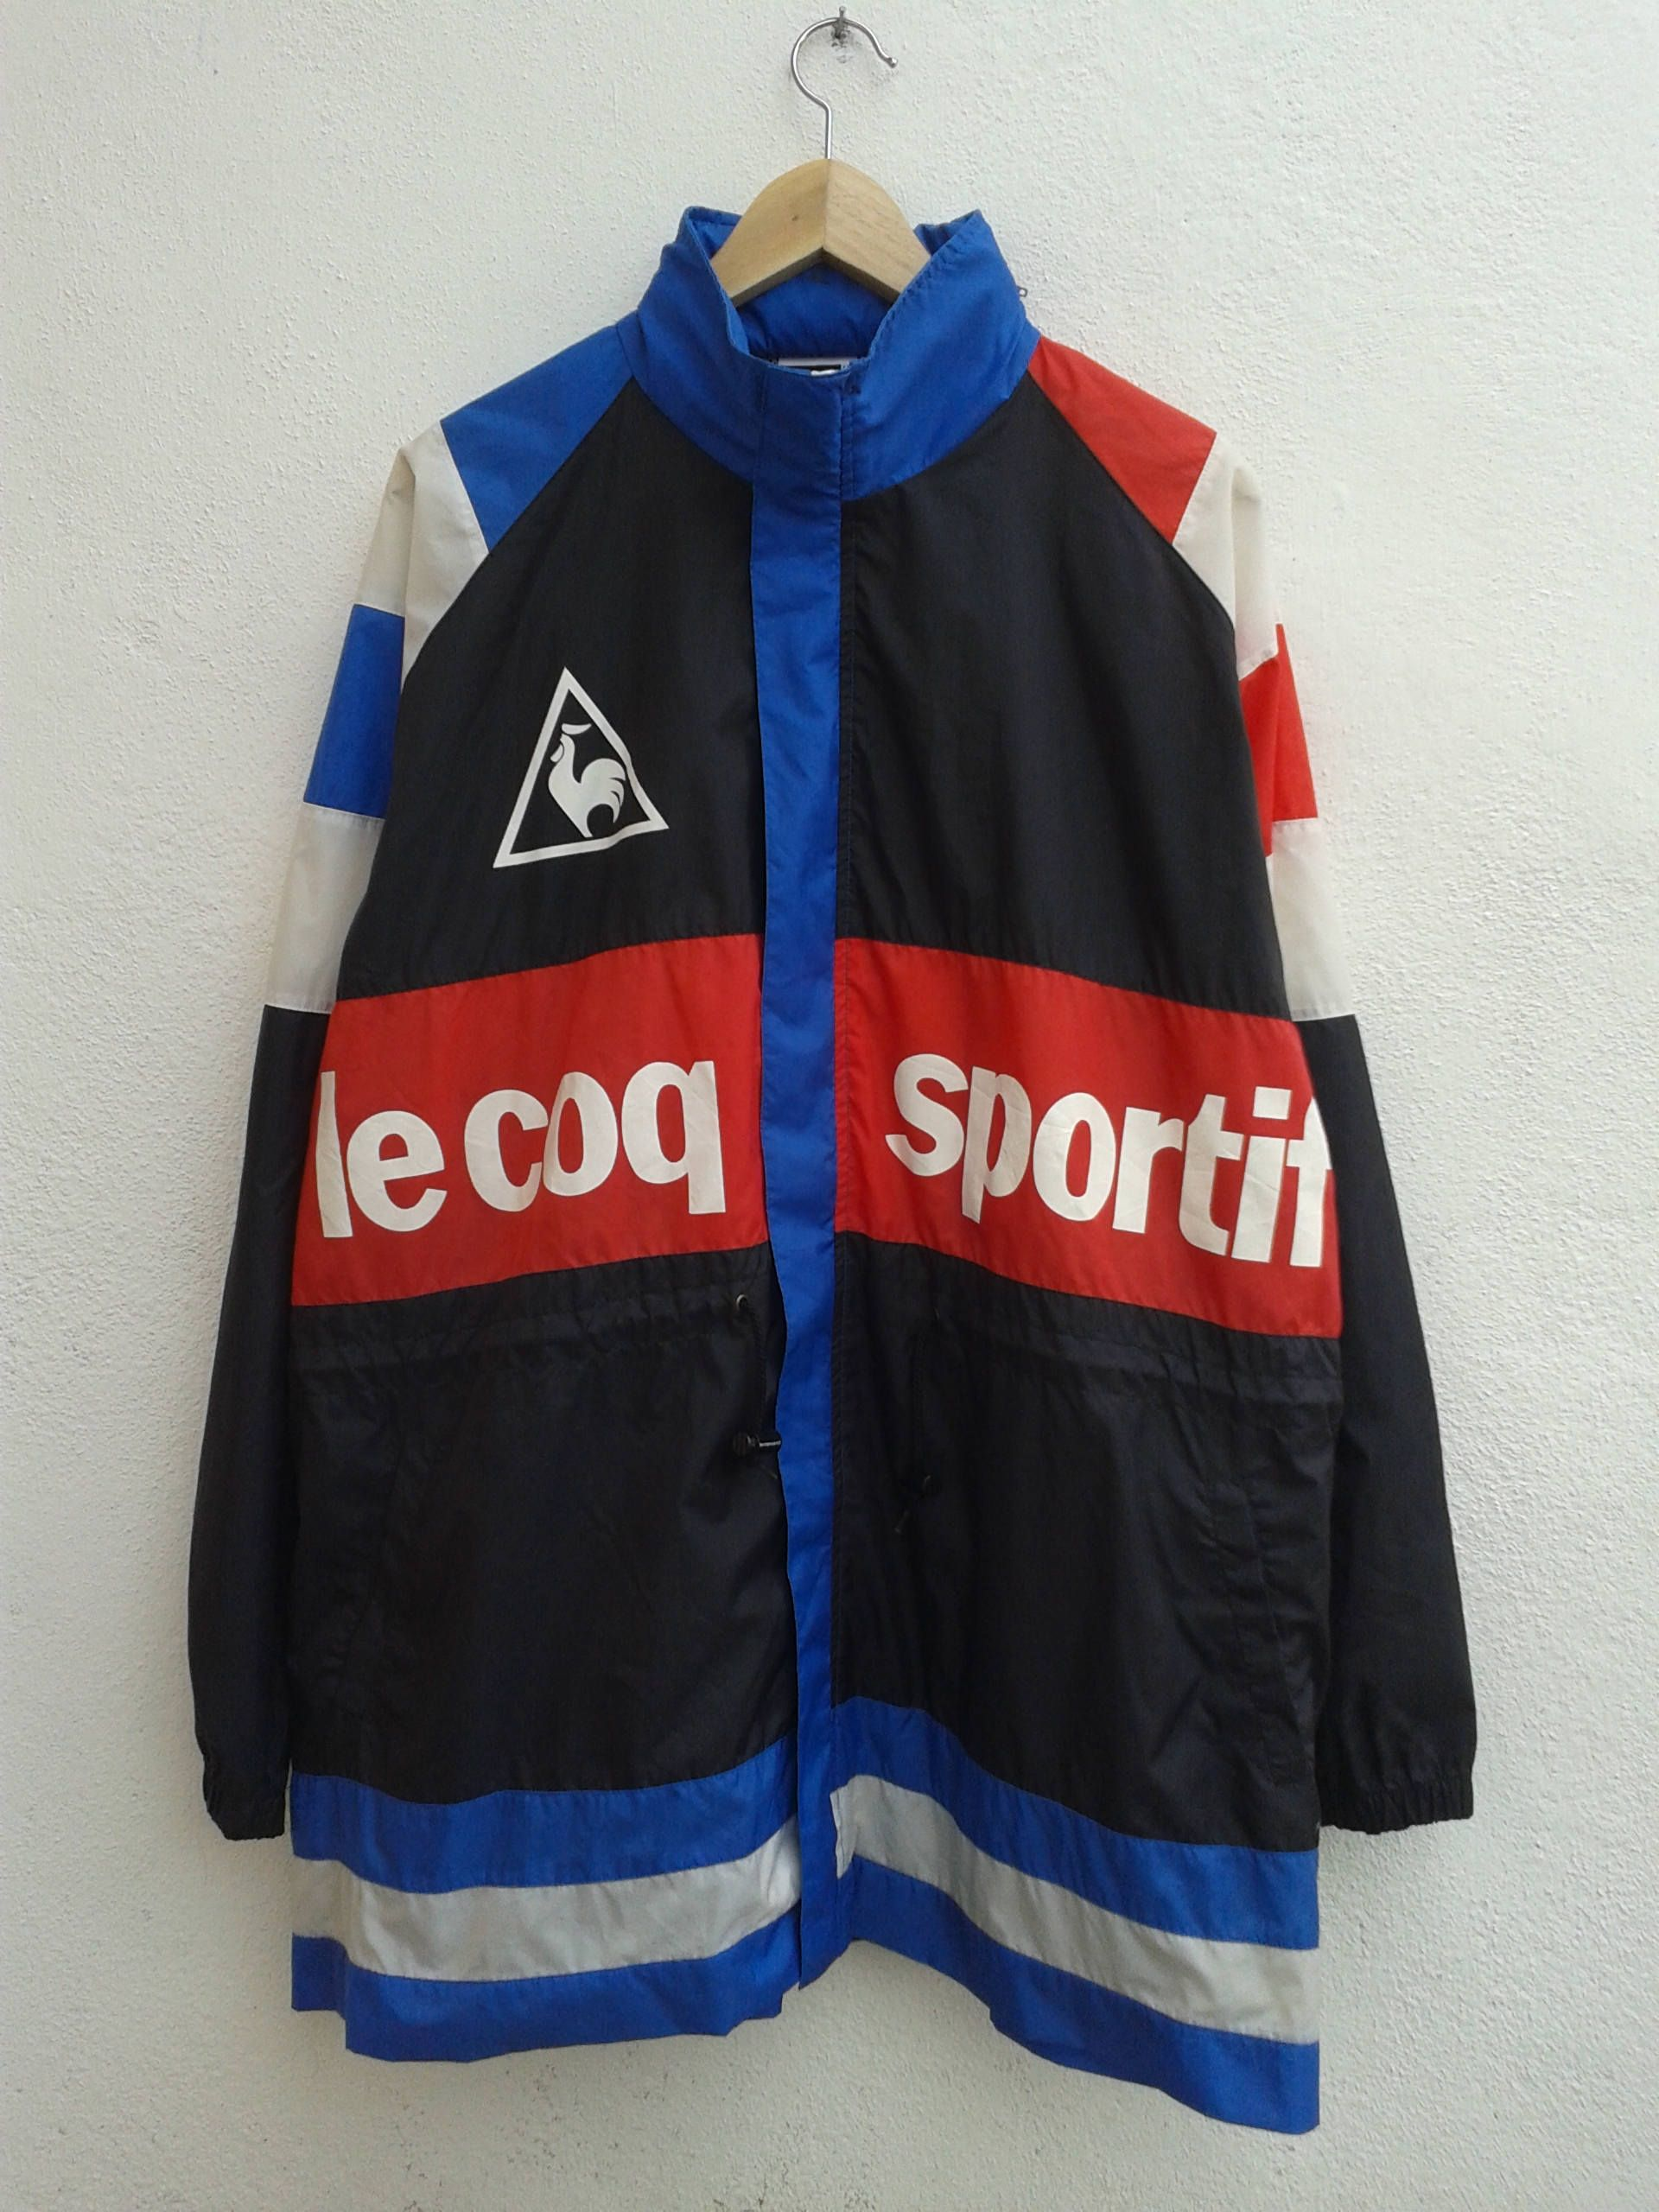 ff5426e111 LE COQ SPORTIF Chest Box Spell Out Color Block Vintage 90s Sportswear Windbreaker  Lightweight Raincoat Hoodies Jacket Size L by BubaGumpBudu on Etsy